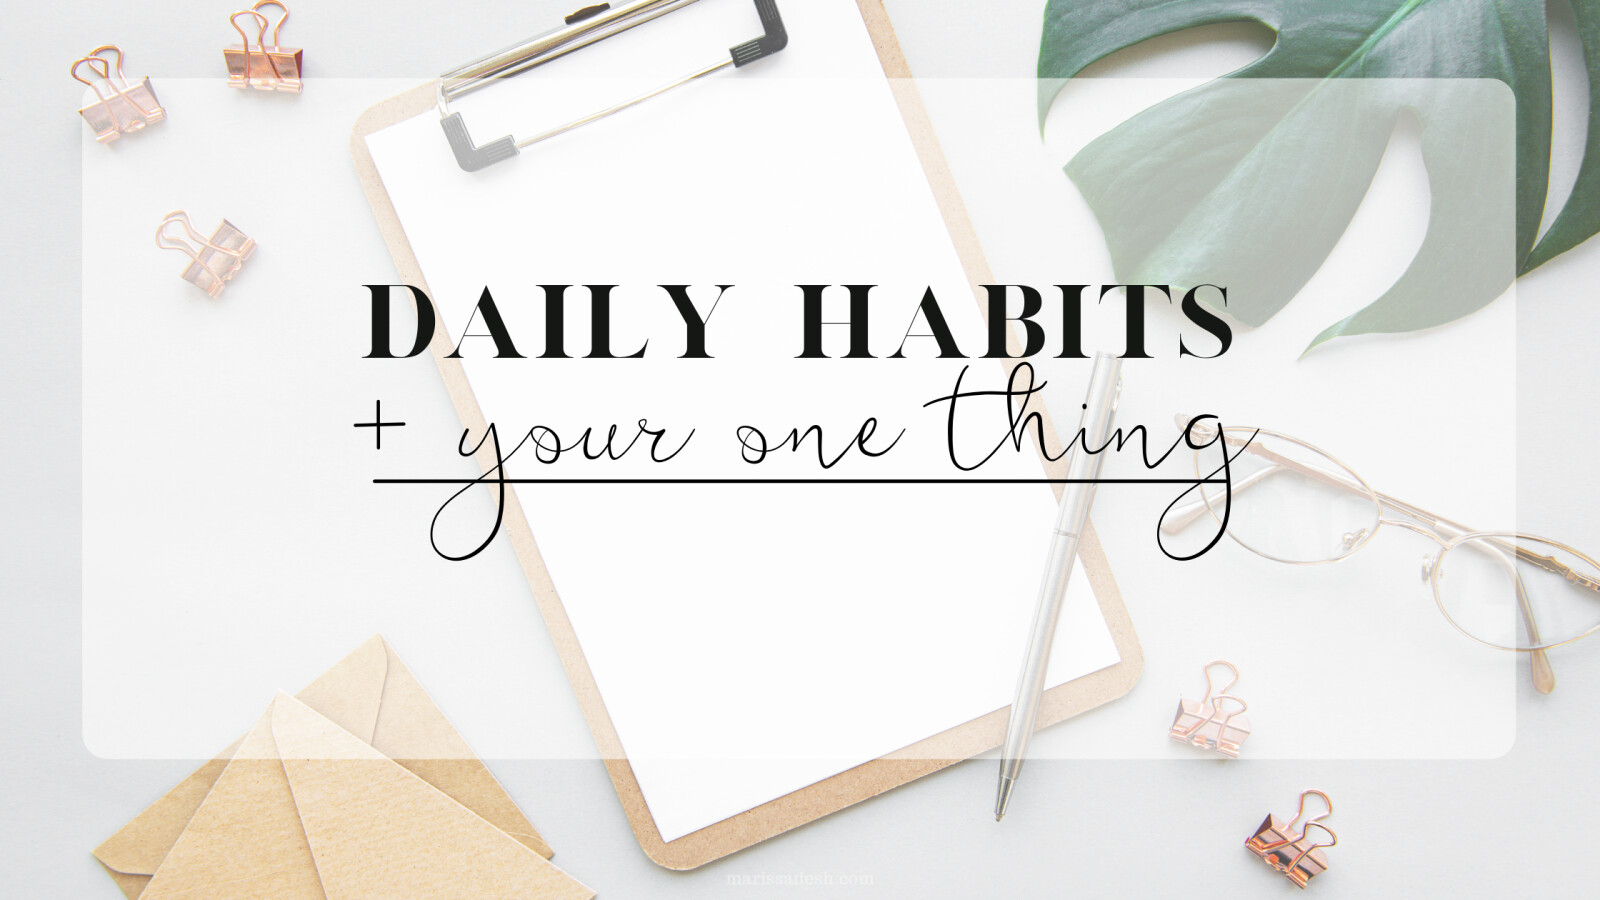 Daily Habits and Your One Thing | Habits of Highly Successful People